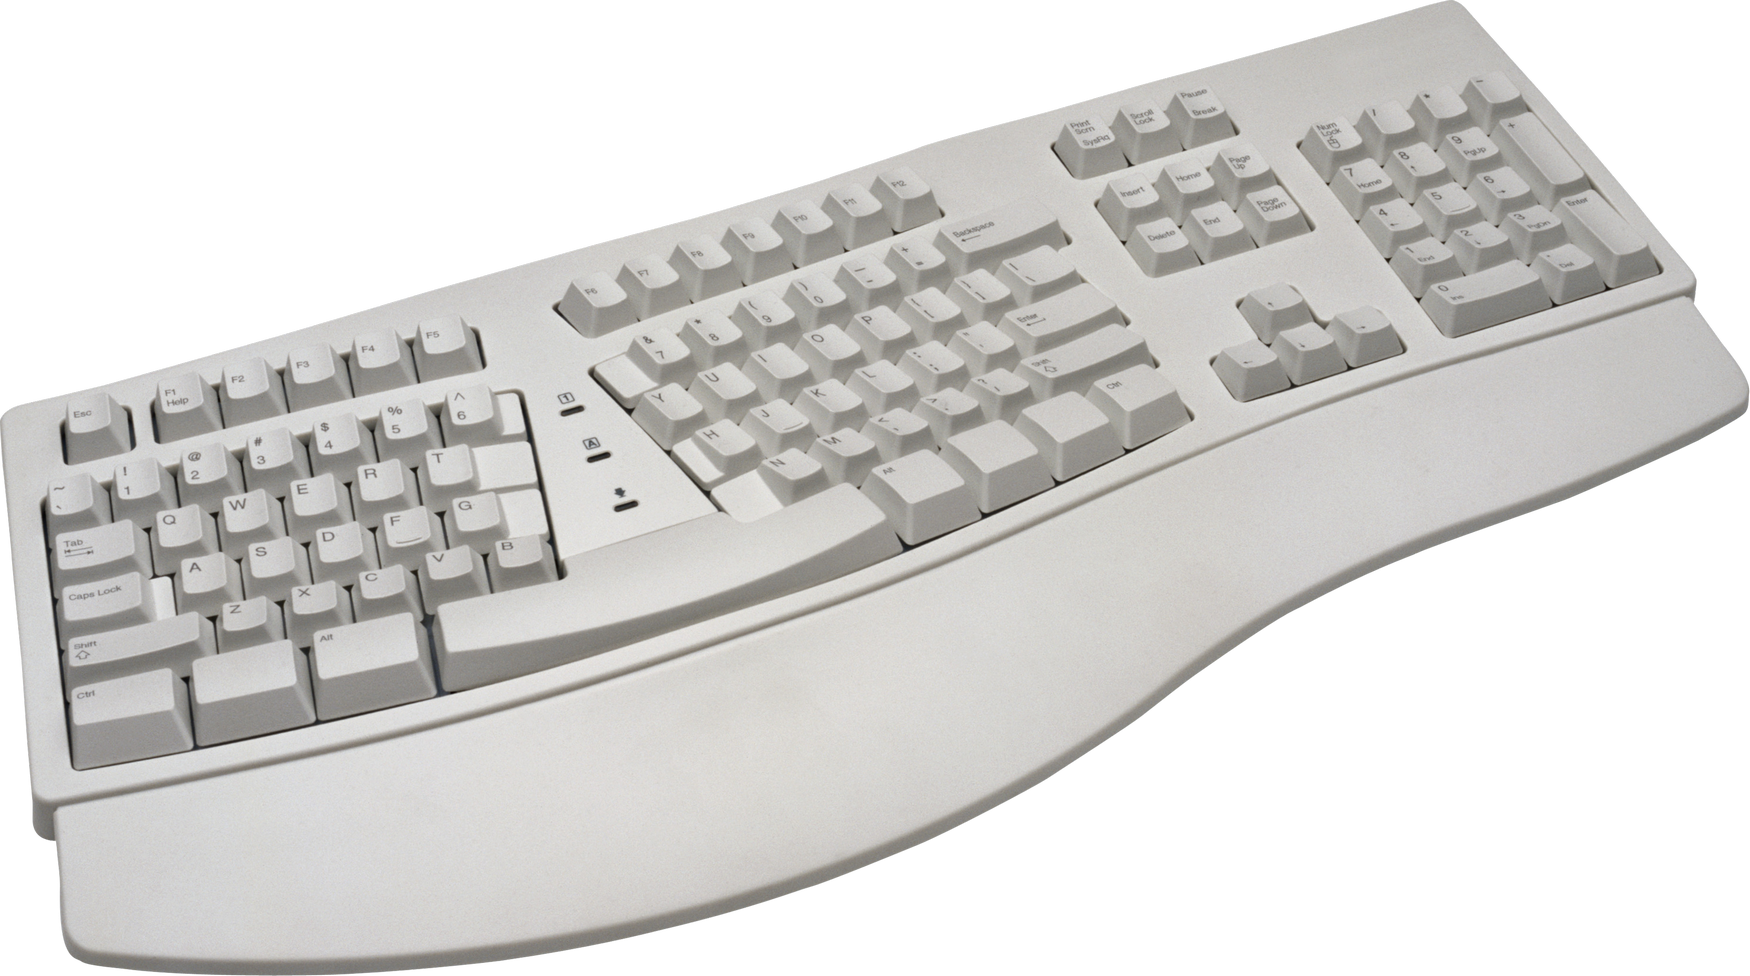 Computer keyboard keys clipart png black and white Keyboard PNG Image - PurePNG | Free transparent CC0 PNG Image Library png black and white